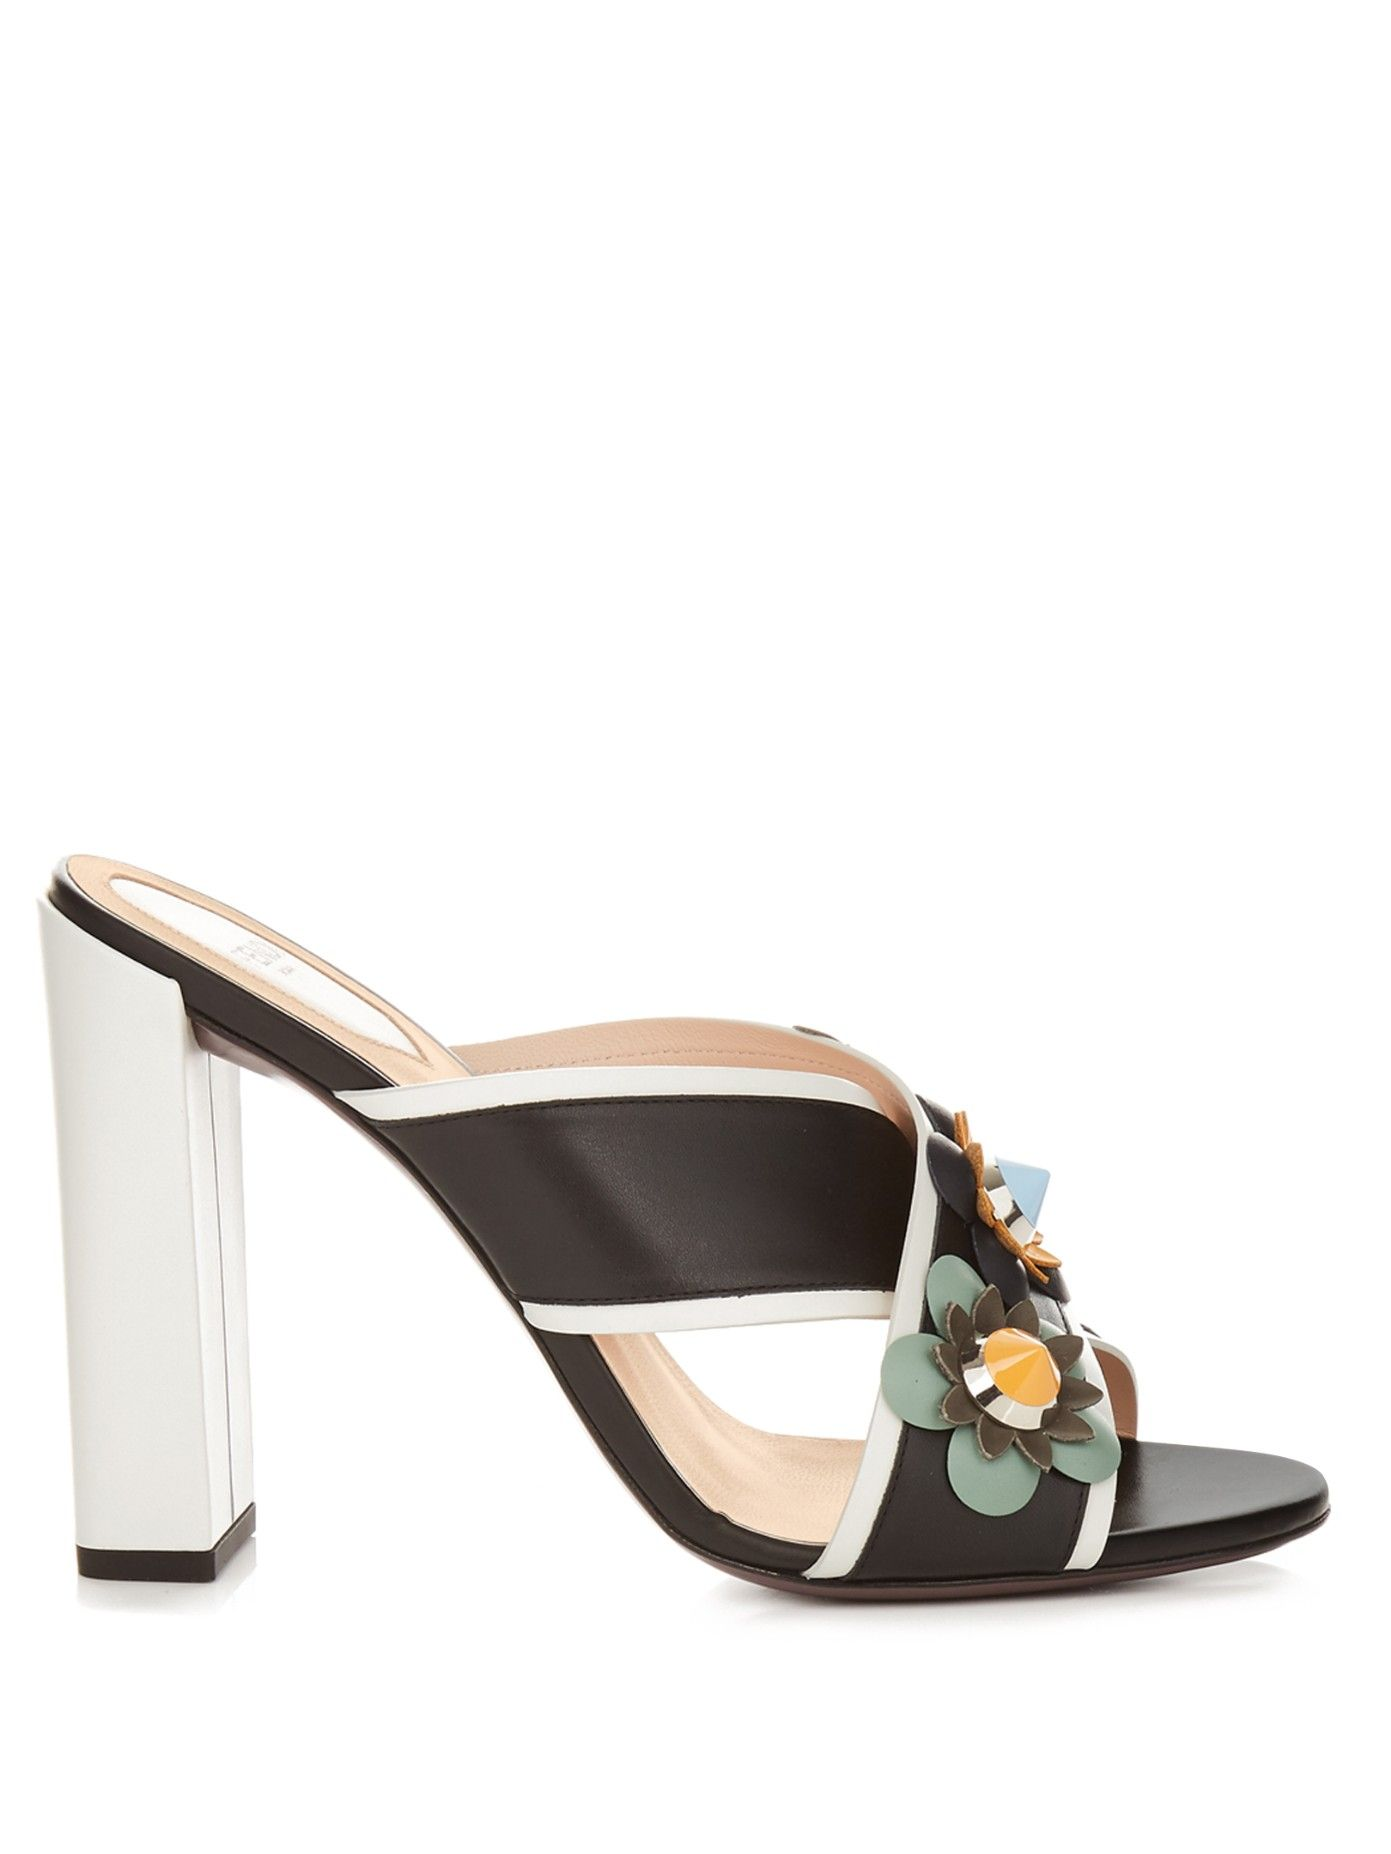 Fendi's black and white leather mules are a great showcase of the label's new Flowerland embellishment – a contemporary take on florals.